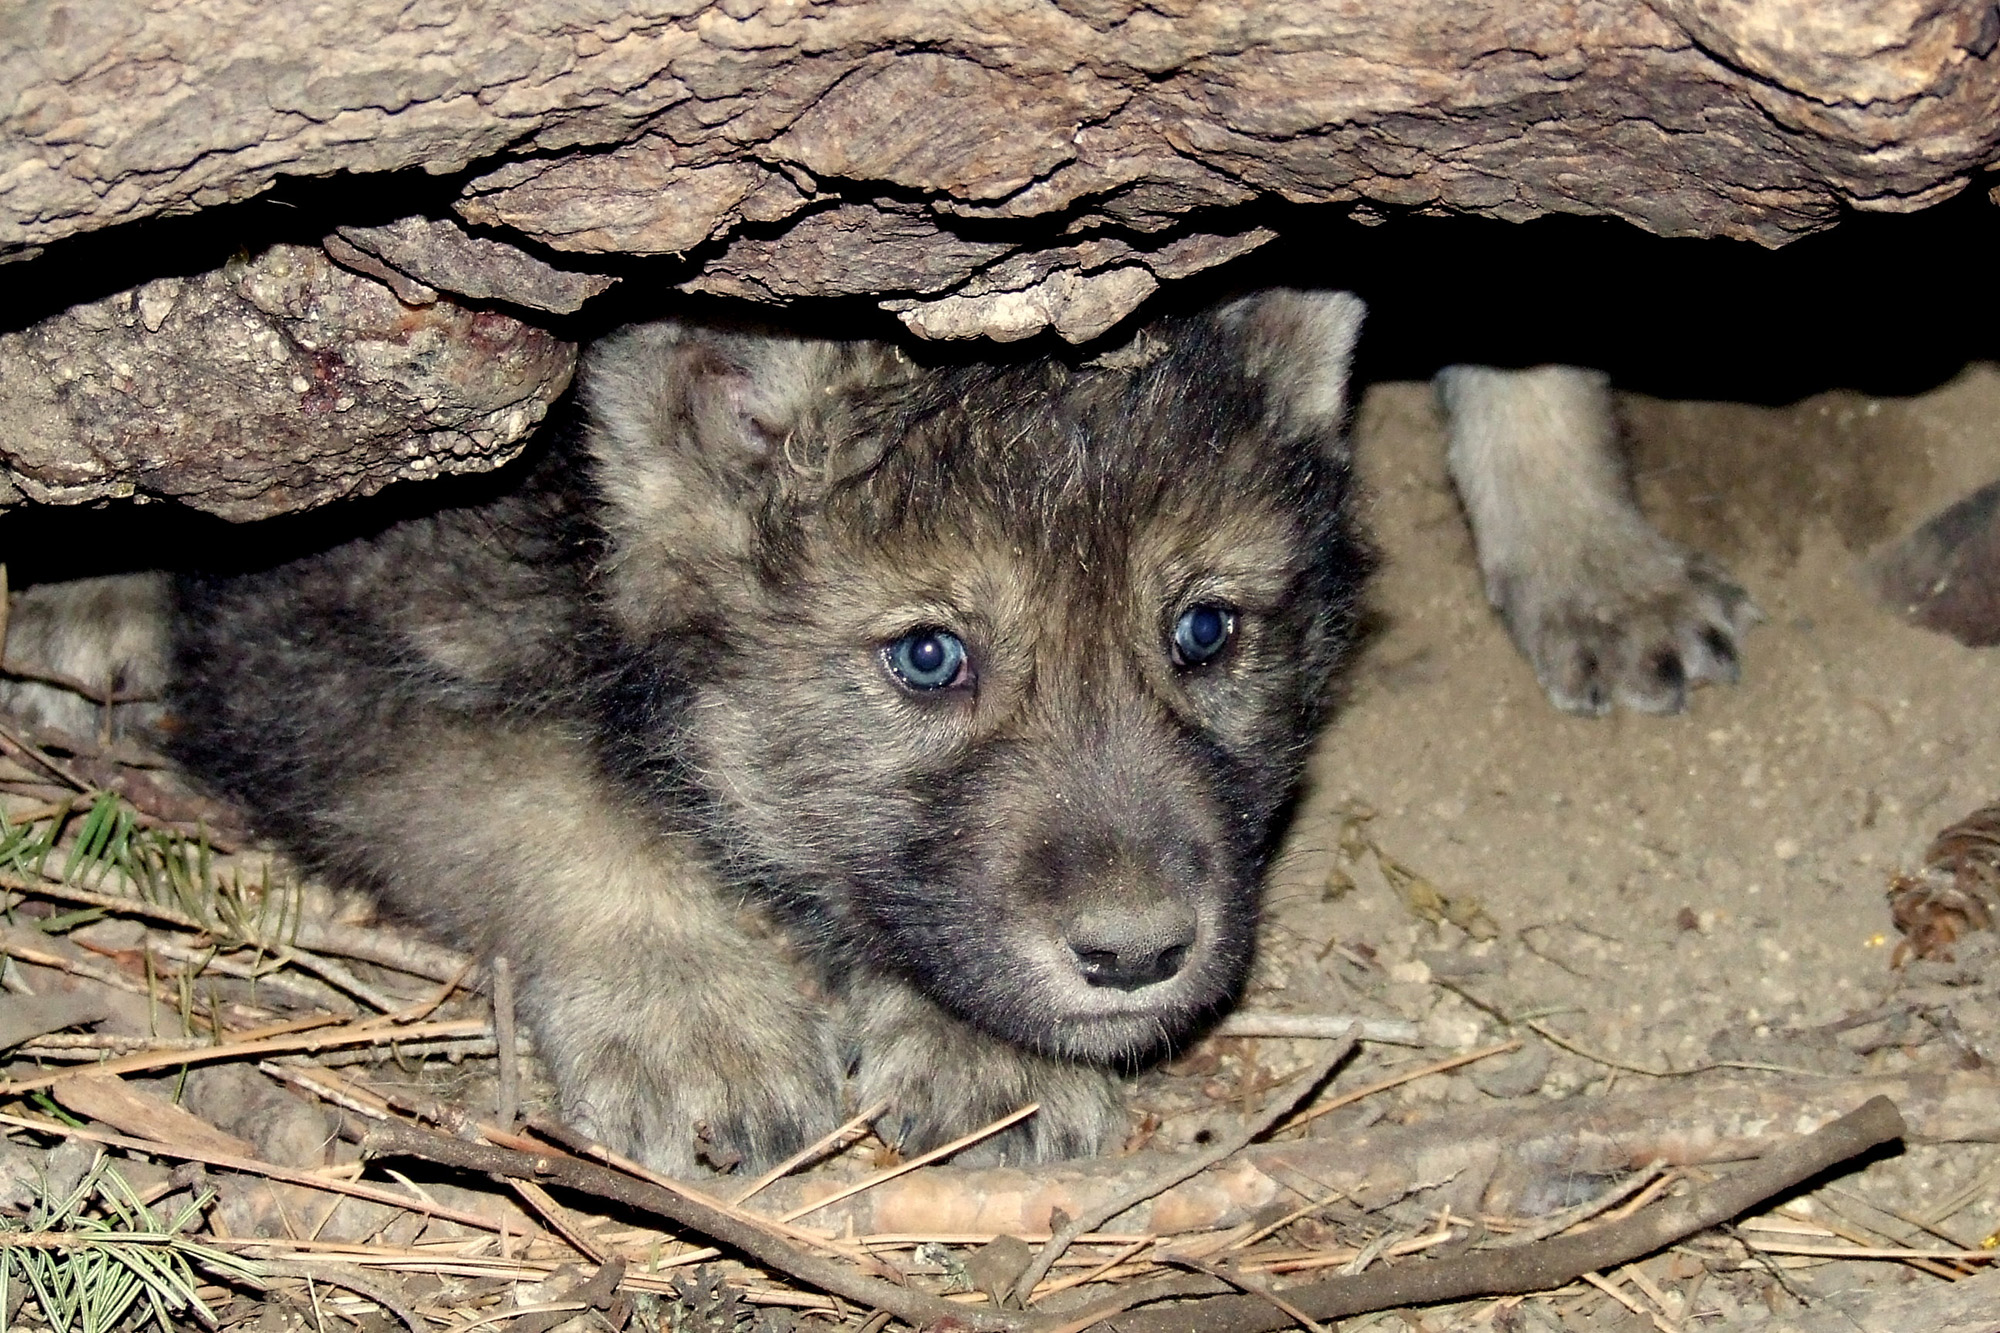 A gray wolf pup emerges from their den.